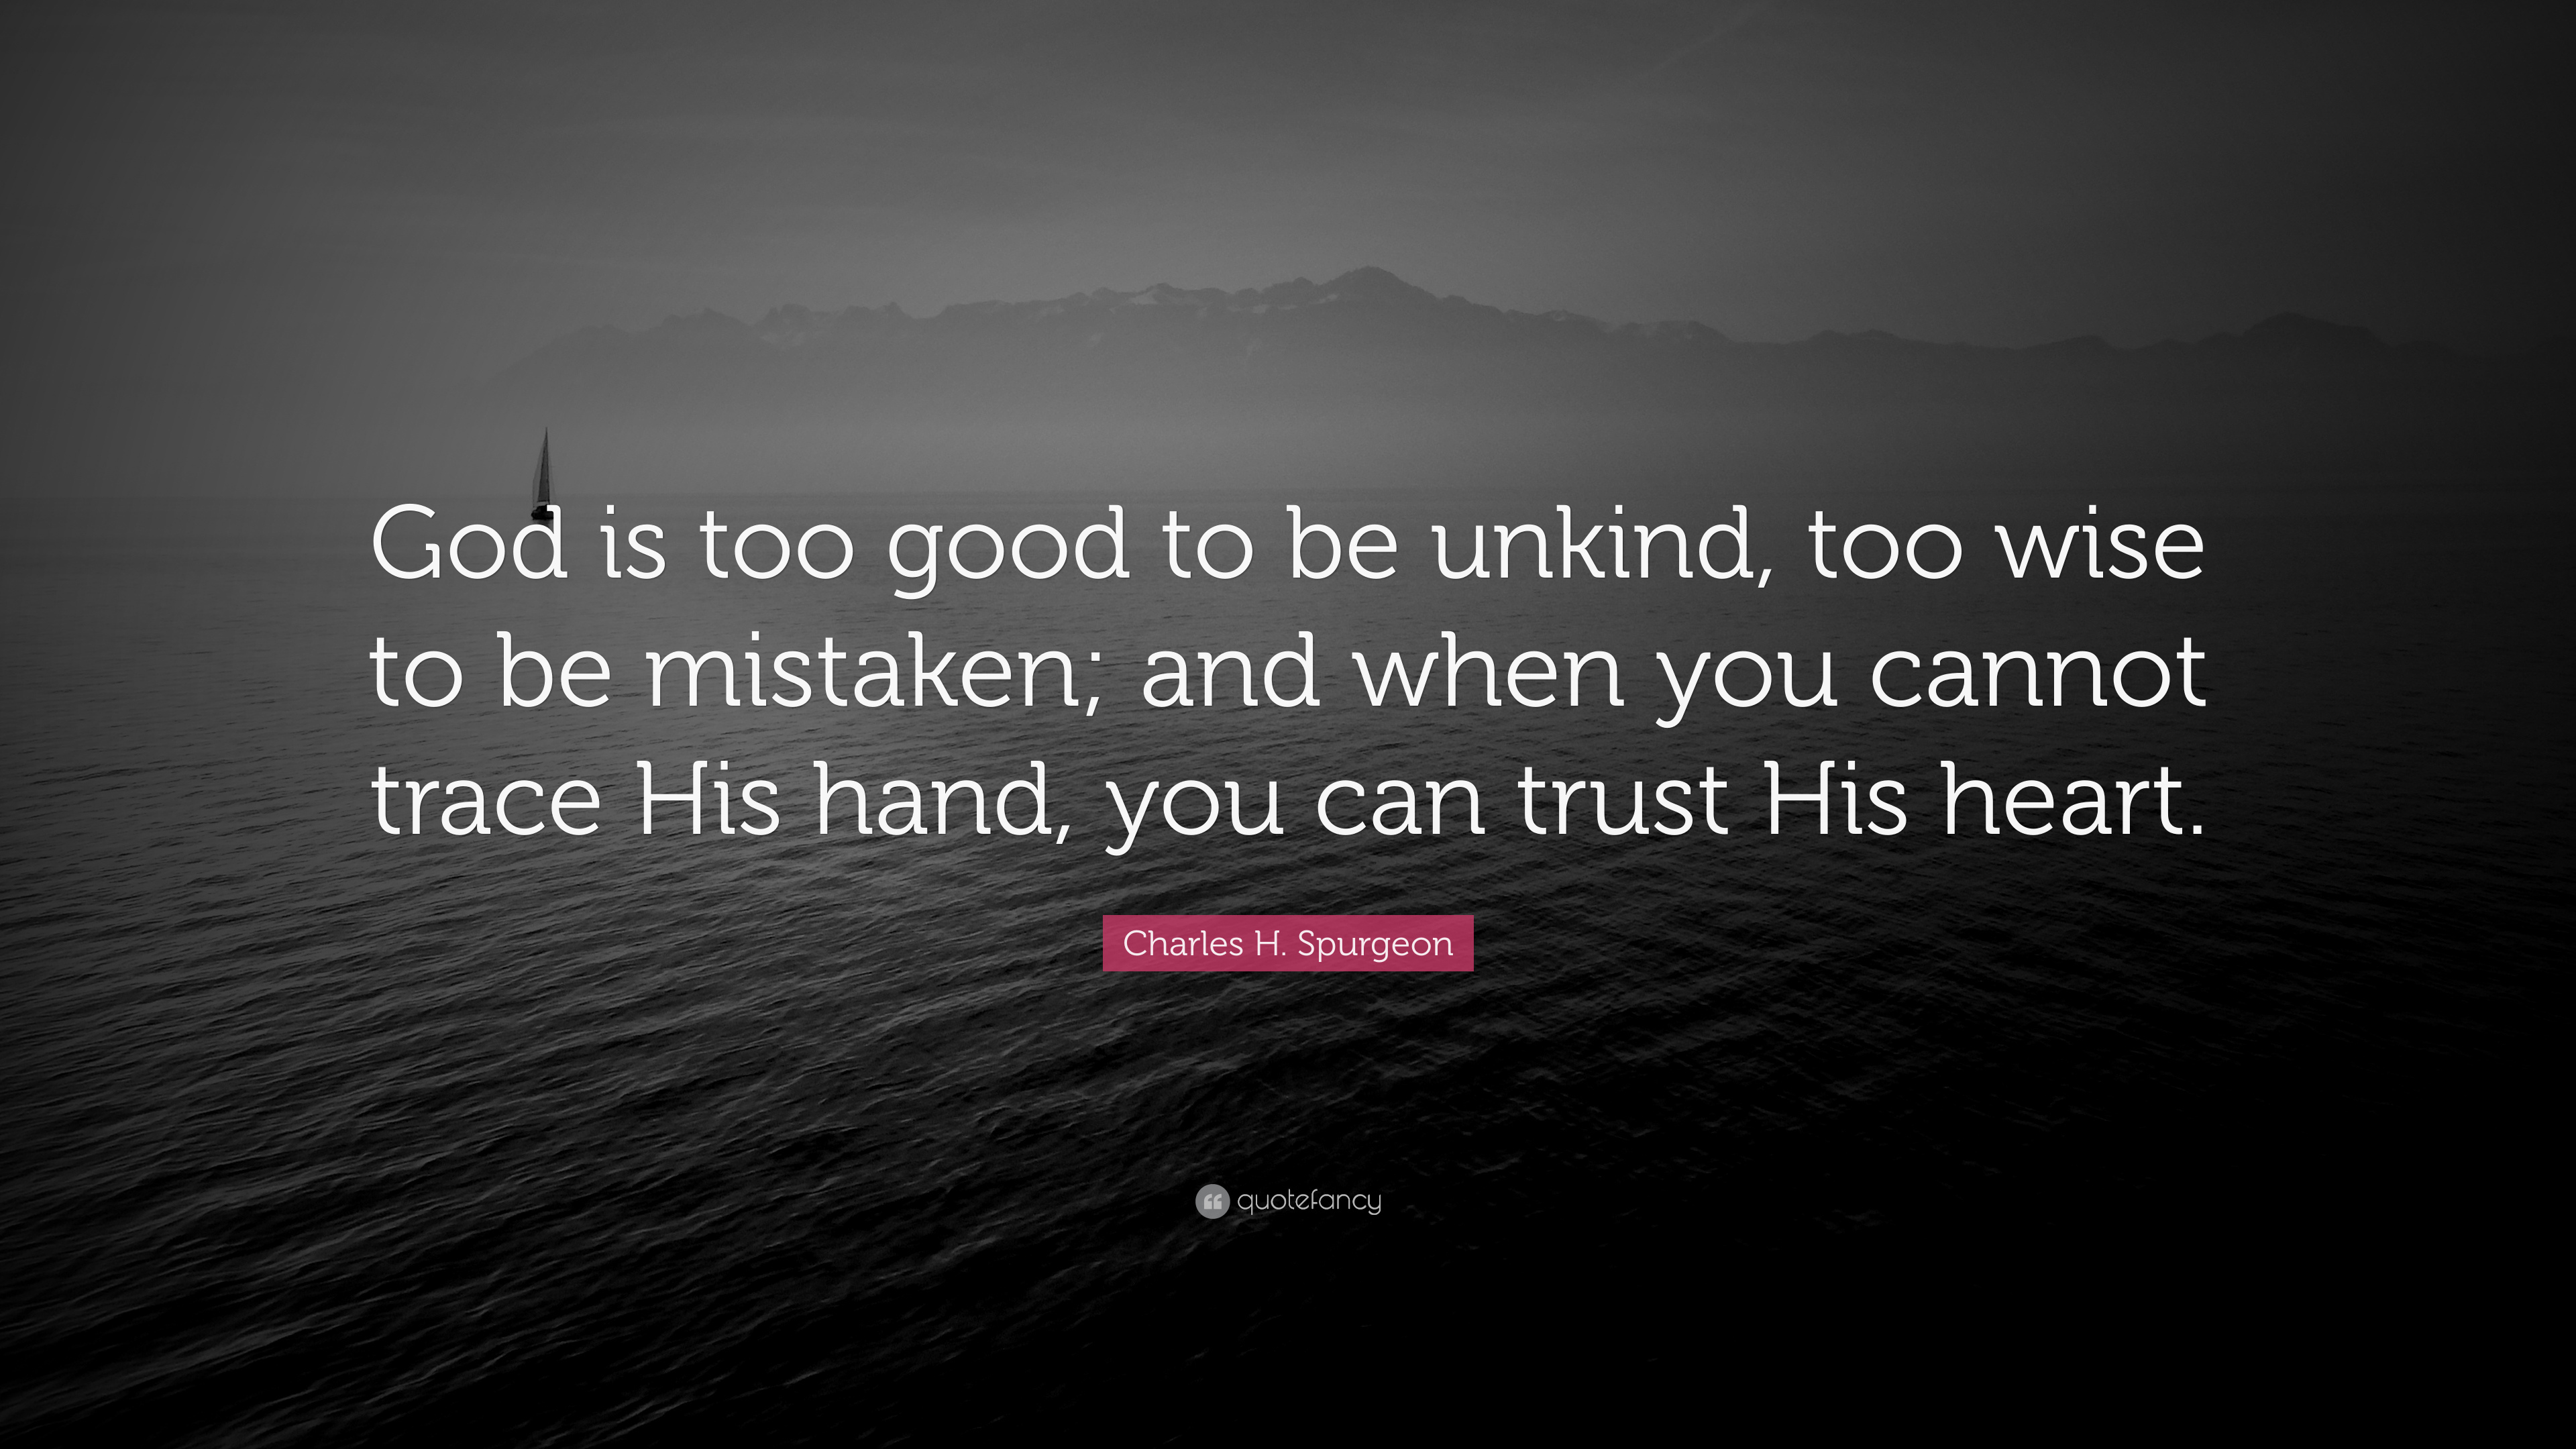 Nick Vujicic Quotes Wallpaper Charles H Spurgeon Quote God Is Too Good To Be Unkind